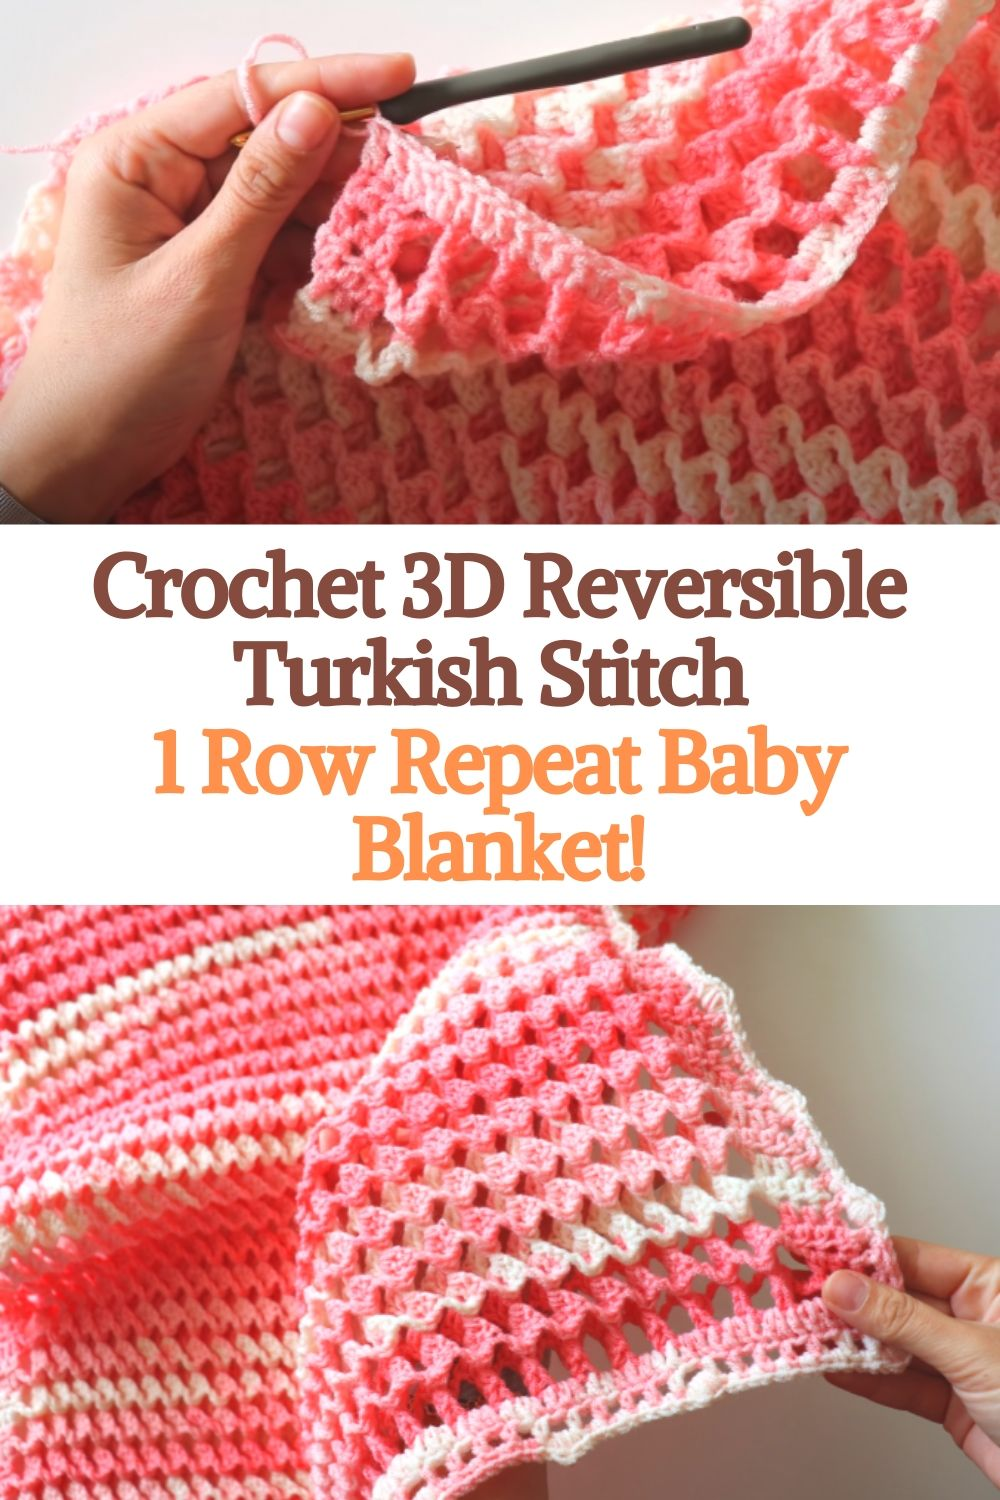 Crochet 3D Reversible Turkish Stitch 1 Row Repeat Baby Blanket!